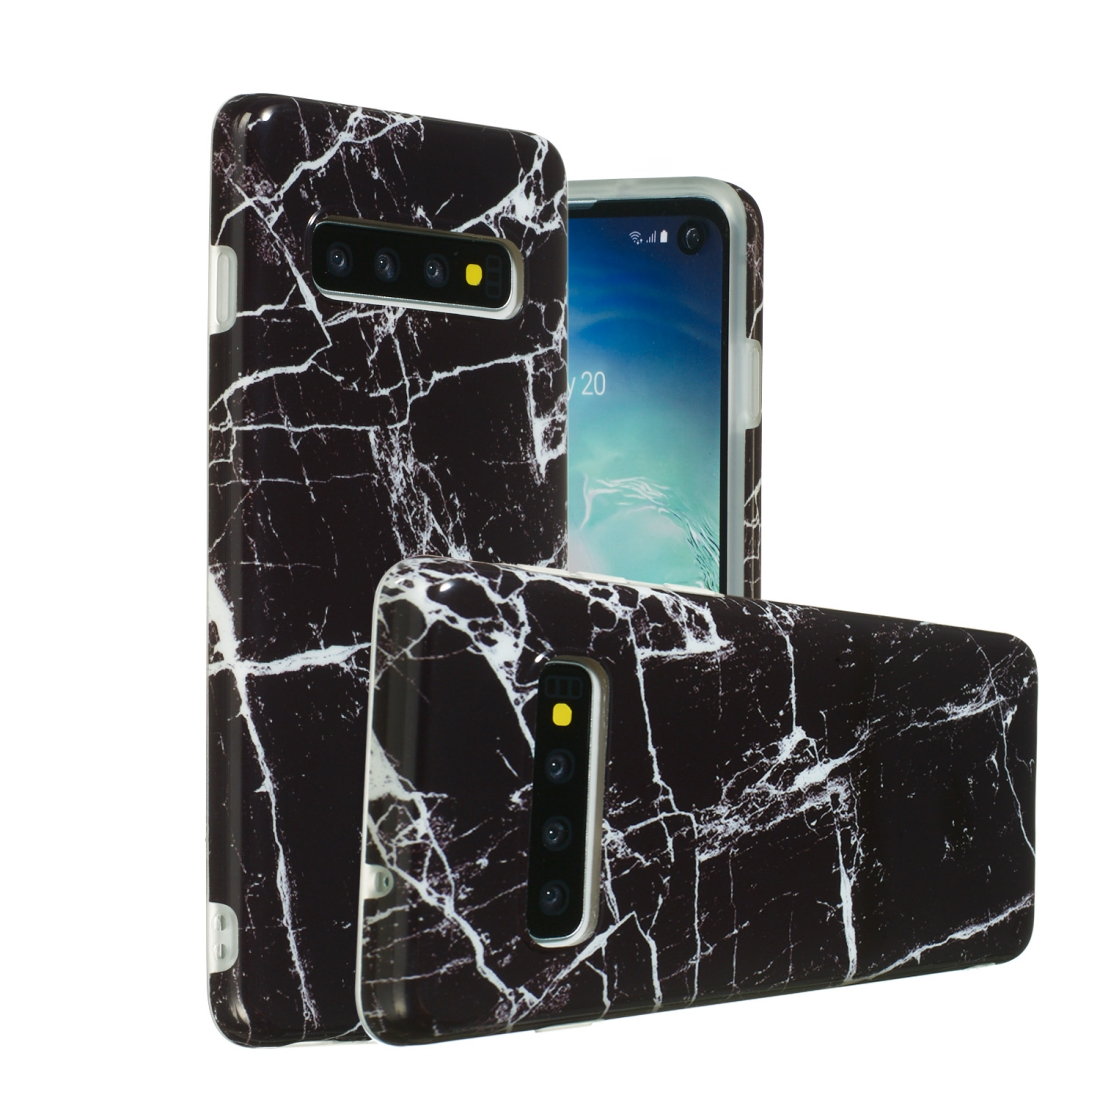 TPU Protective Case For Galaxy S10 (Black Marble)